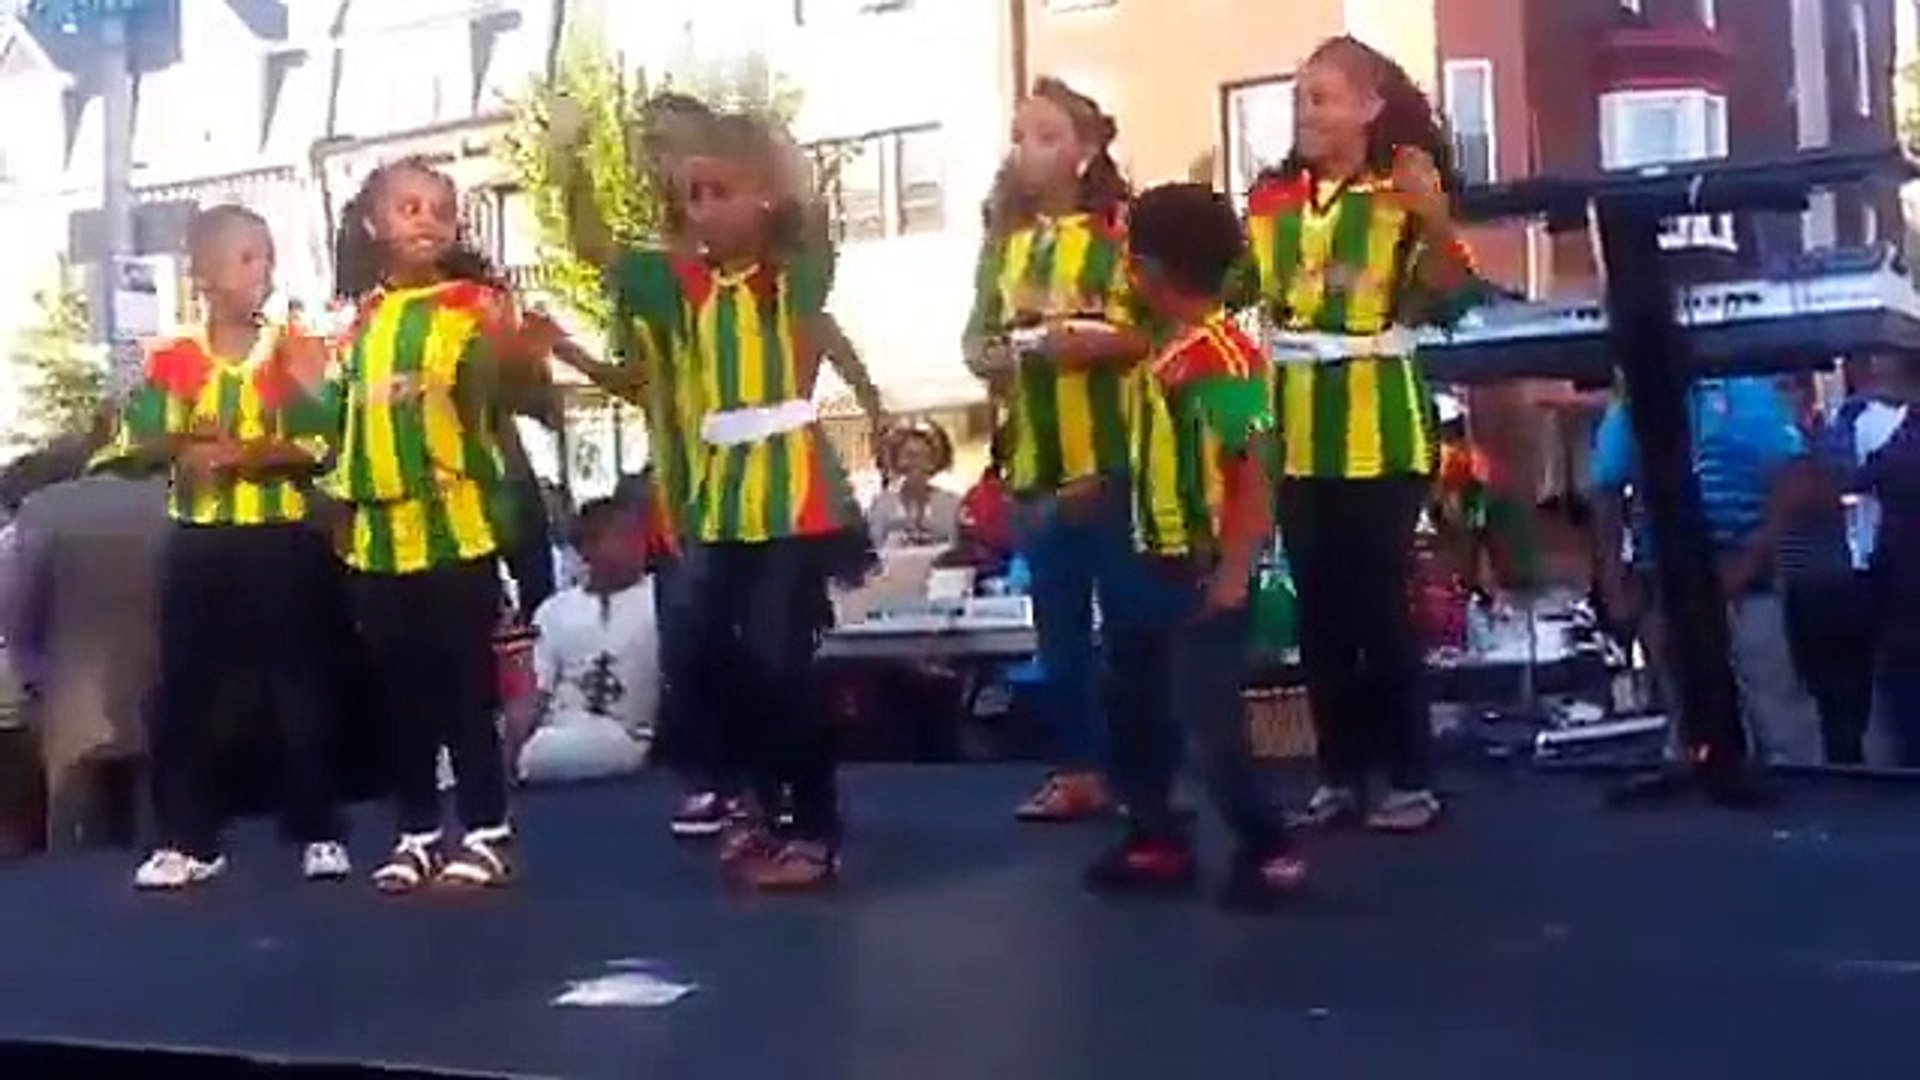 Ethiopia: Ethiopian Community in Philly Celebrating Ethiopian Day